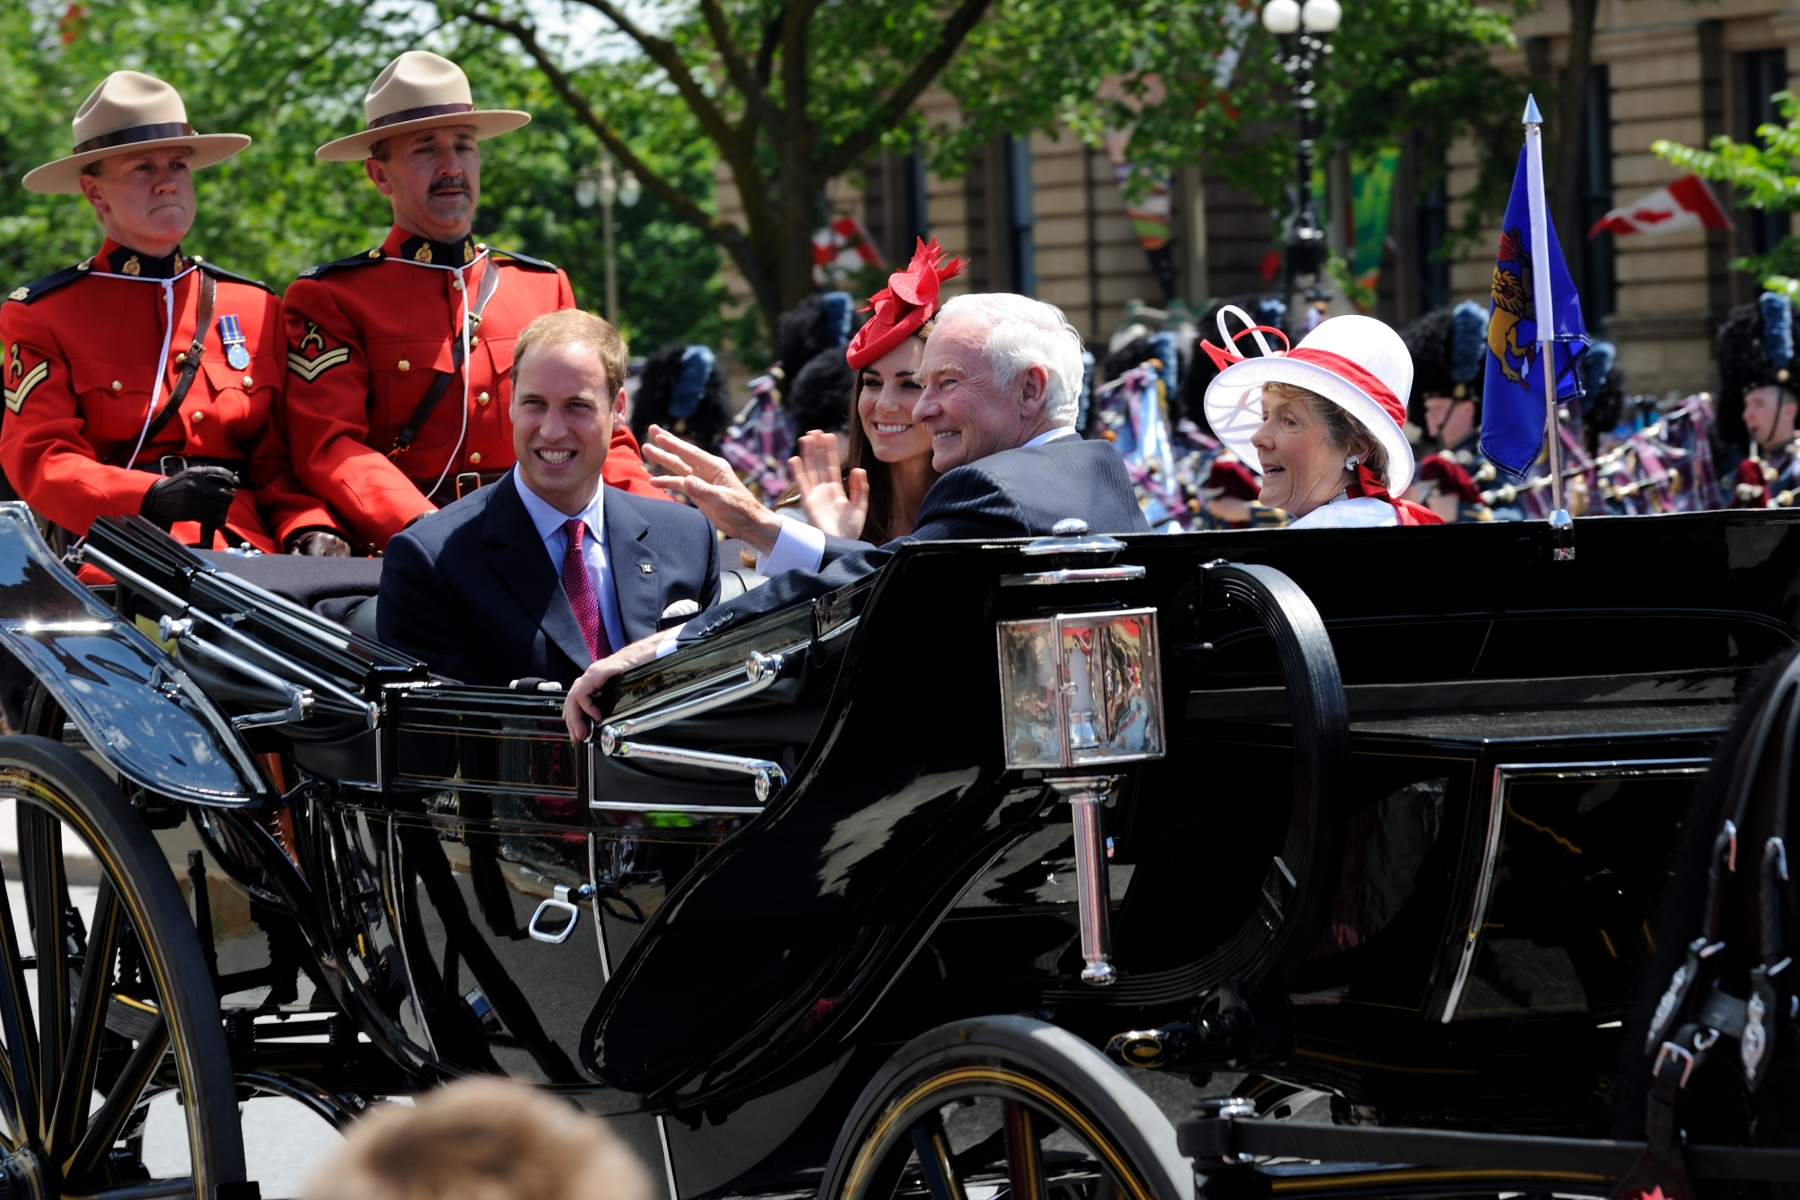 Their Royal Highnesses along with Their Excellencies the Right Honourable David Johnston, Governor General of Canada, and Mrs. Sharon Johnston arrived by landau on Parliament Hill.